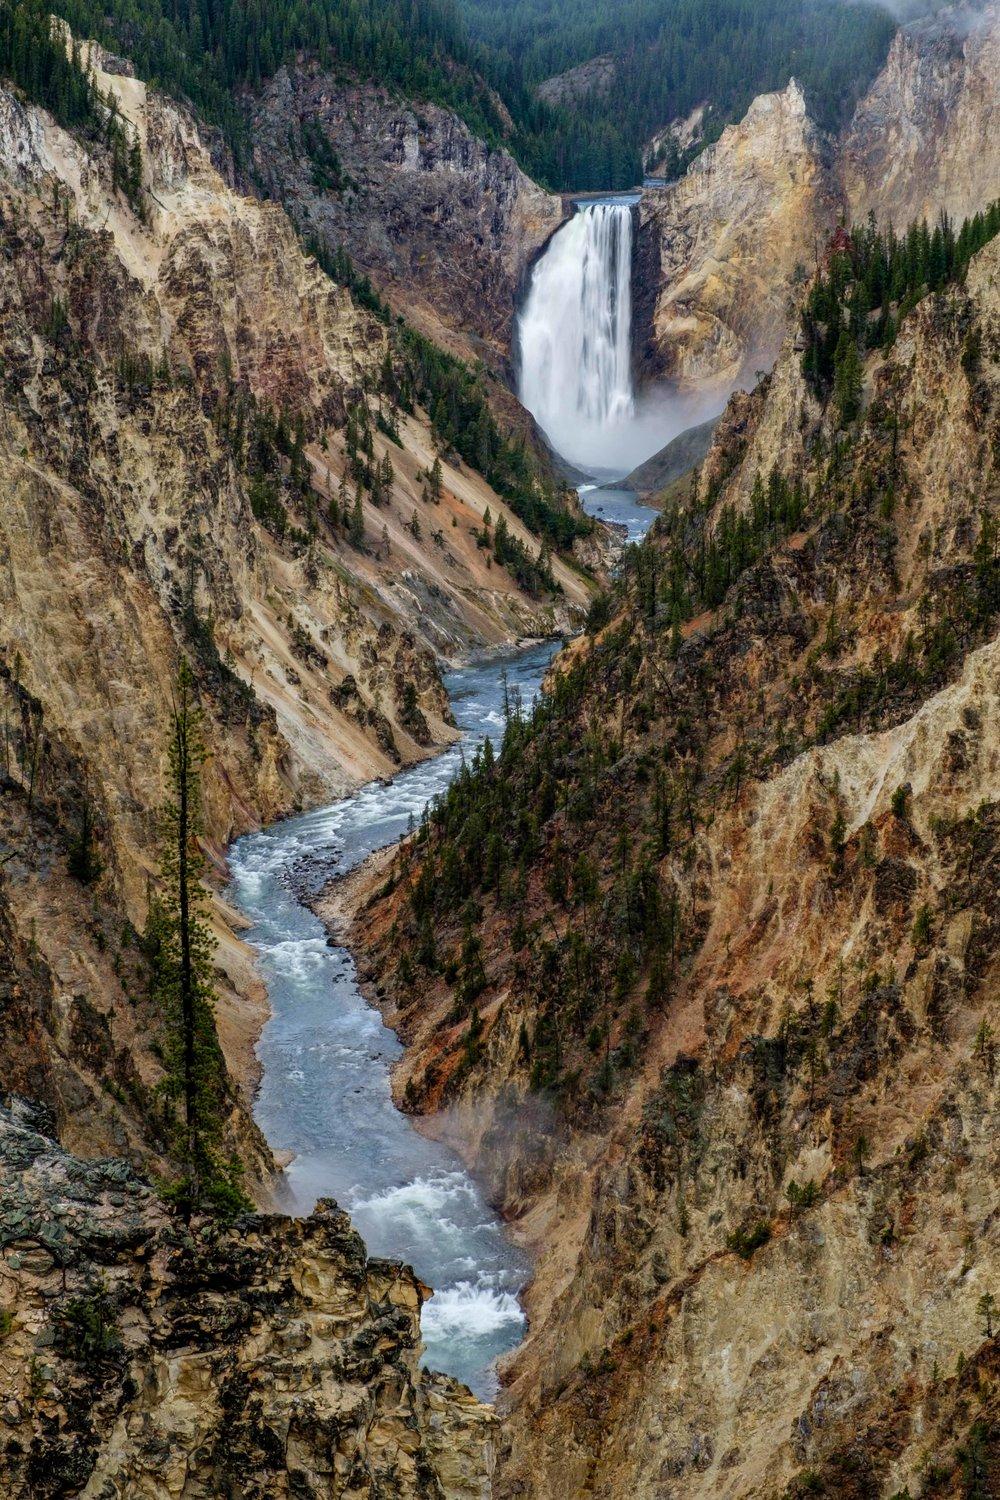 Looking down the Grand Canyon of the Yellowstone from Artist Point.